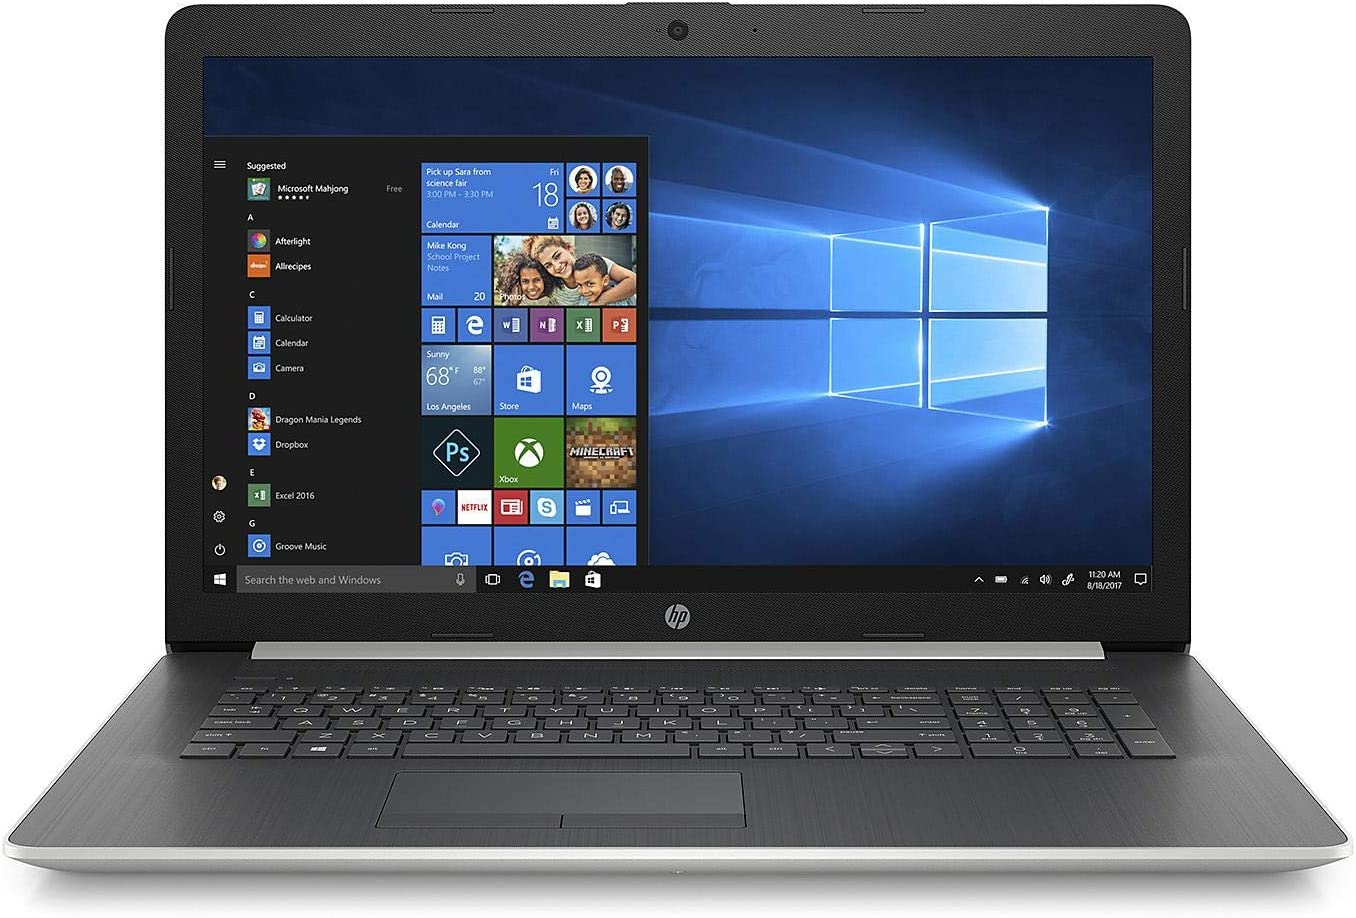 2019 Newest Premium Flagship HP Pavilion 17.3 Inch HD+ Laptop (Intel Quad-Core i7-8550U 1.8GHz up to 4GHz, 8GB RAM, 256GB SSD, WiFi, Bluetooth, HDMI, DVDRW, Windows 10) (Silver)